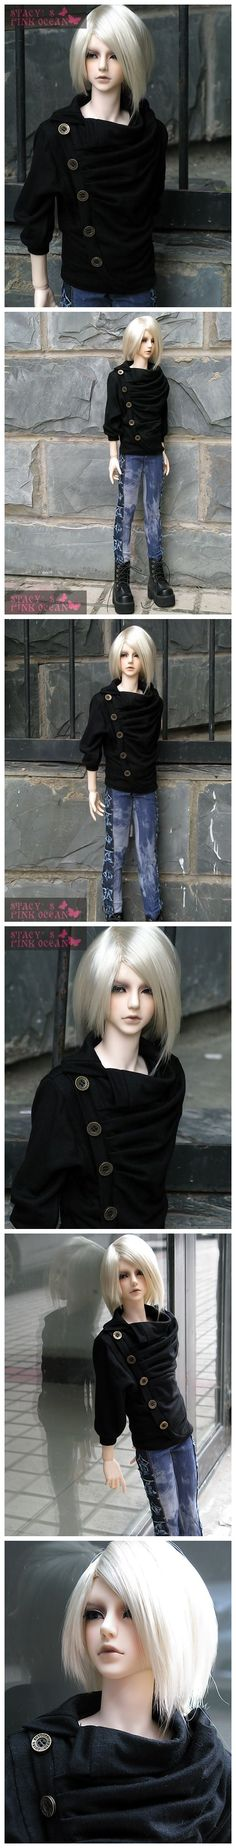 BJD Outfits - BJD Accessories, Dolls - Alice's Collections